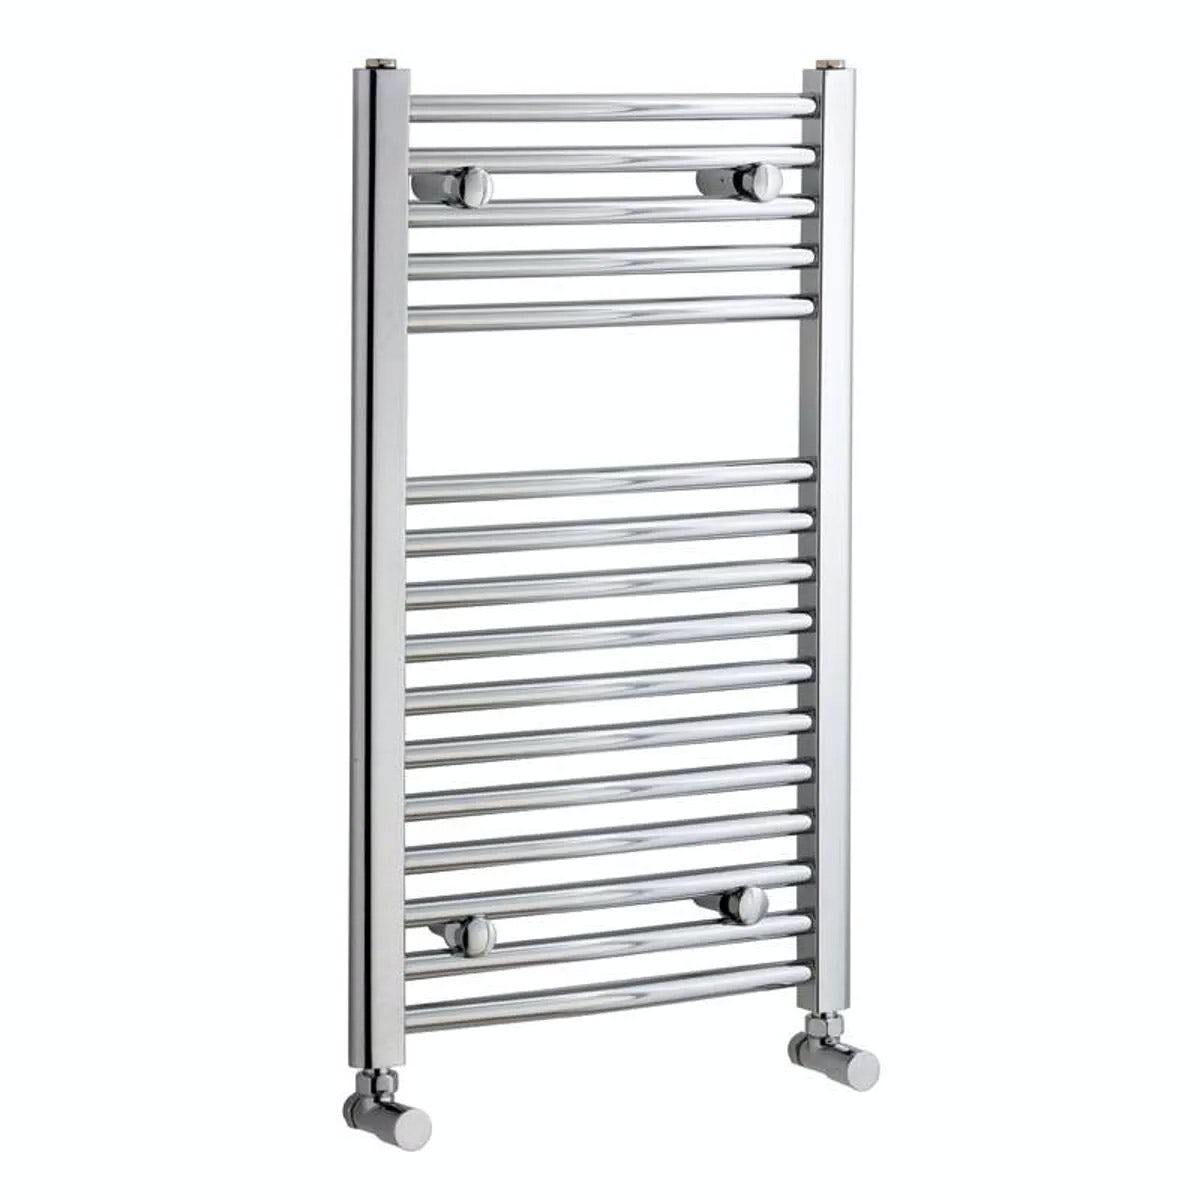 Natasha ladder rail straight modern electric towel radiator in chrome - Curved Heated Towel Rail 750 X 450